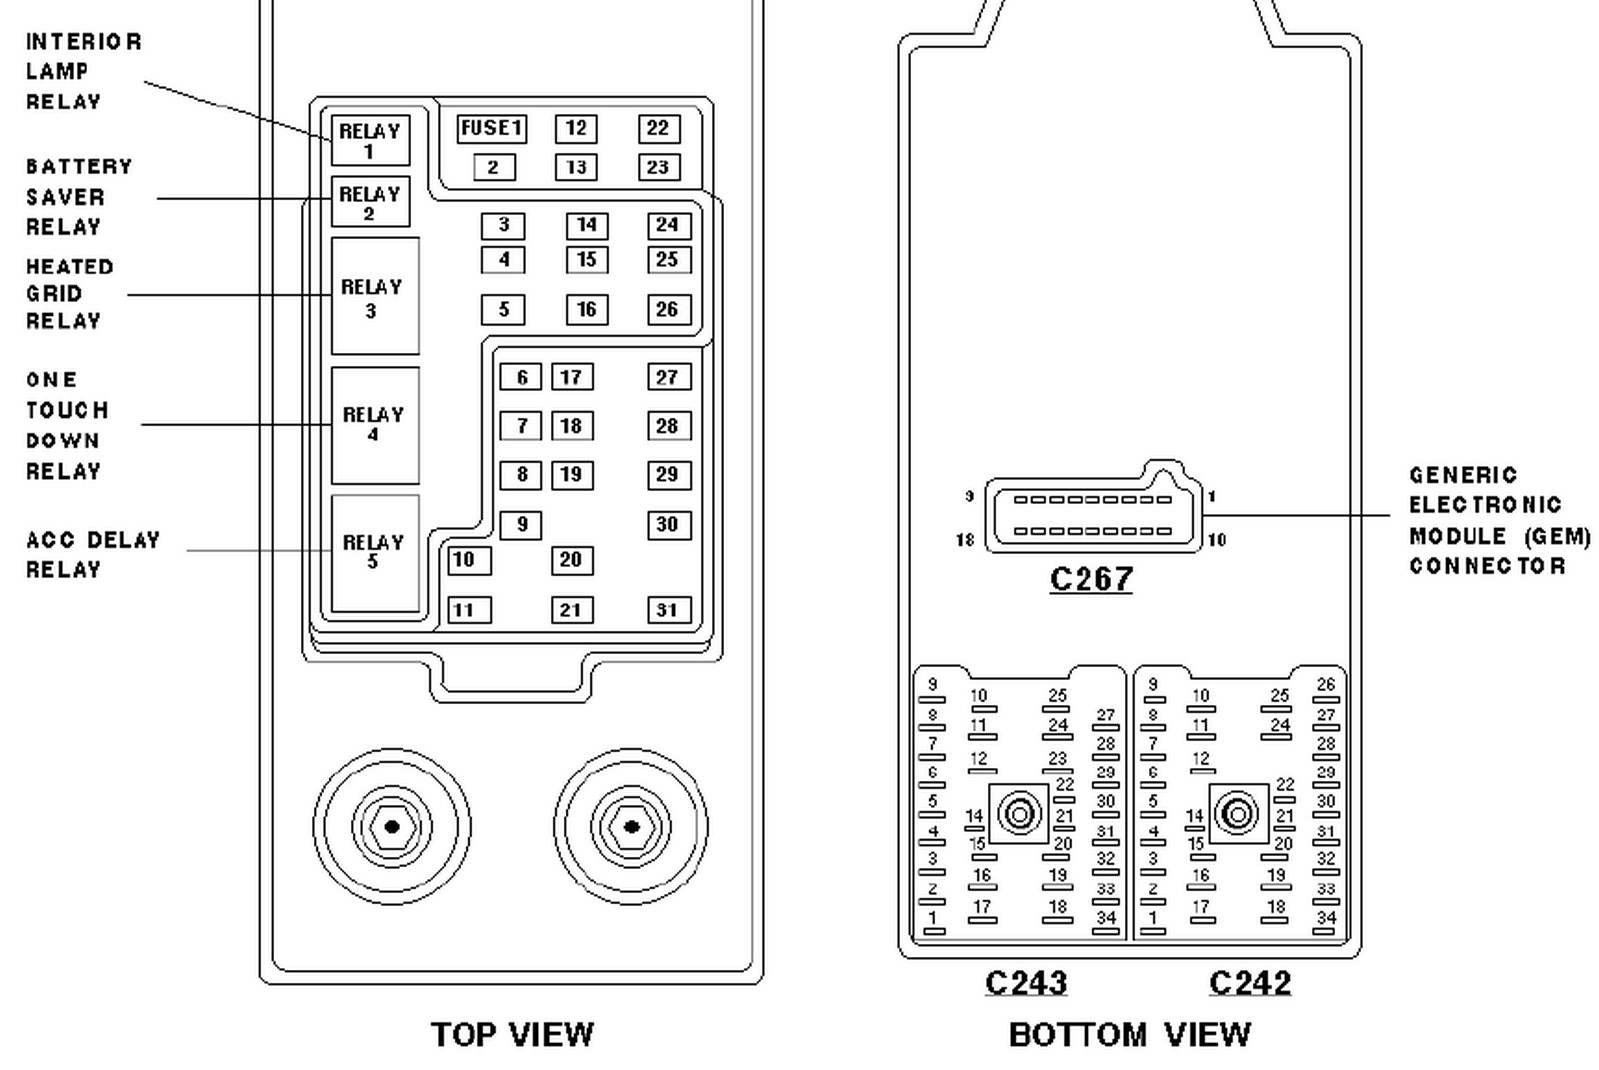 1997 Expedition Fuse Box Diagram Schematics 97 Camry Ford Image Details 99